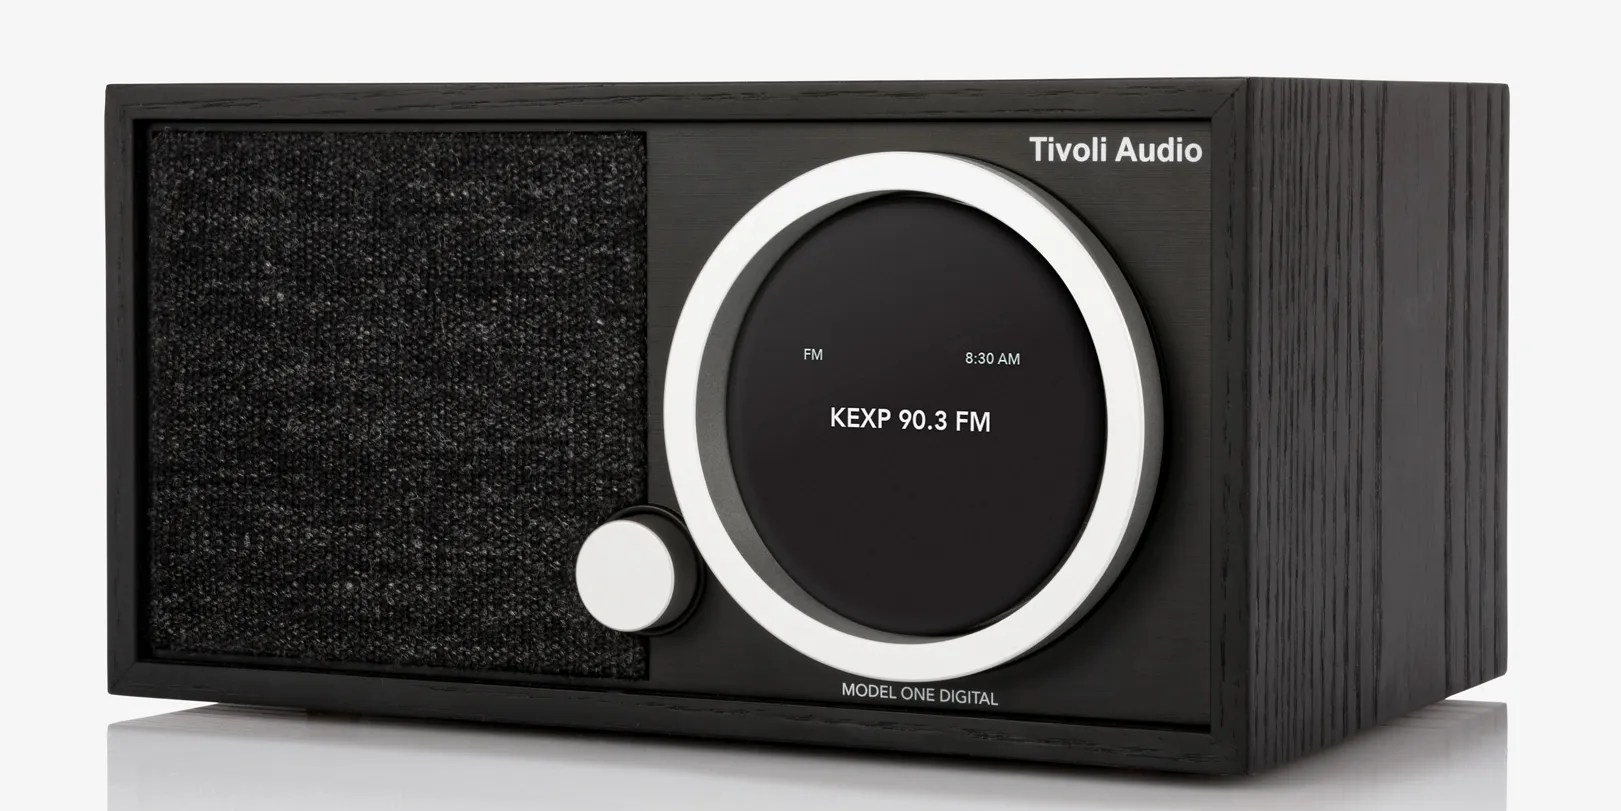 Tivoli Audio Model One Alternative Tivoli Model One Digital Review The Classic Table Top Radio Gets Updated For The Streaming Age